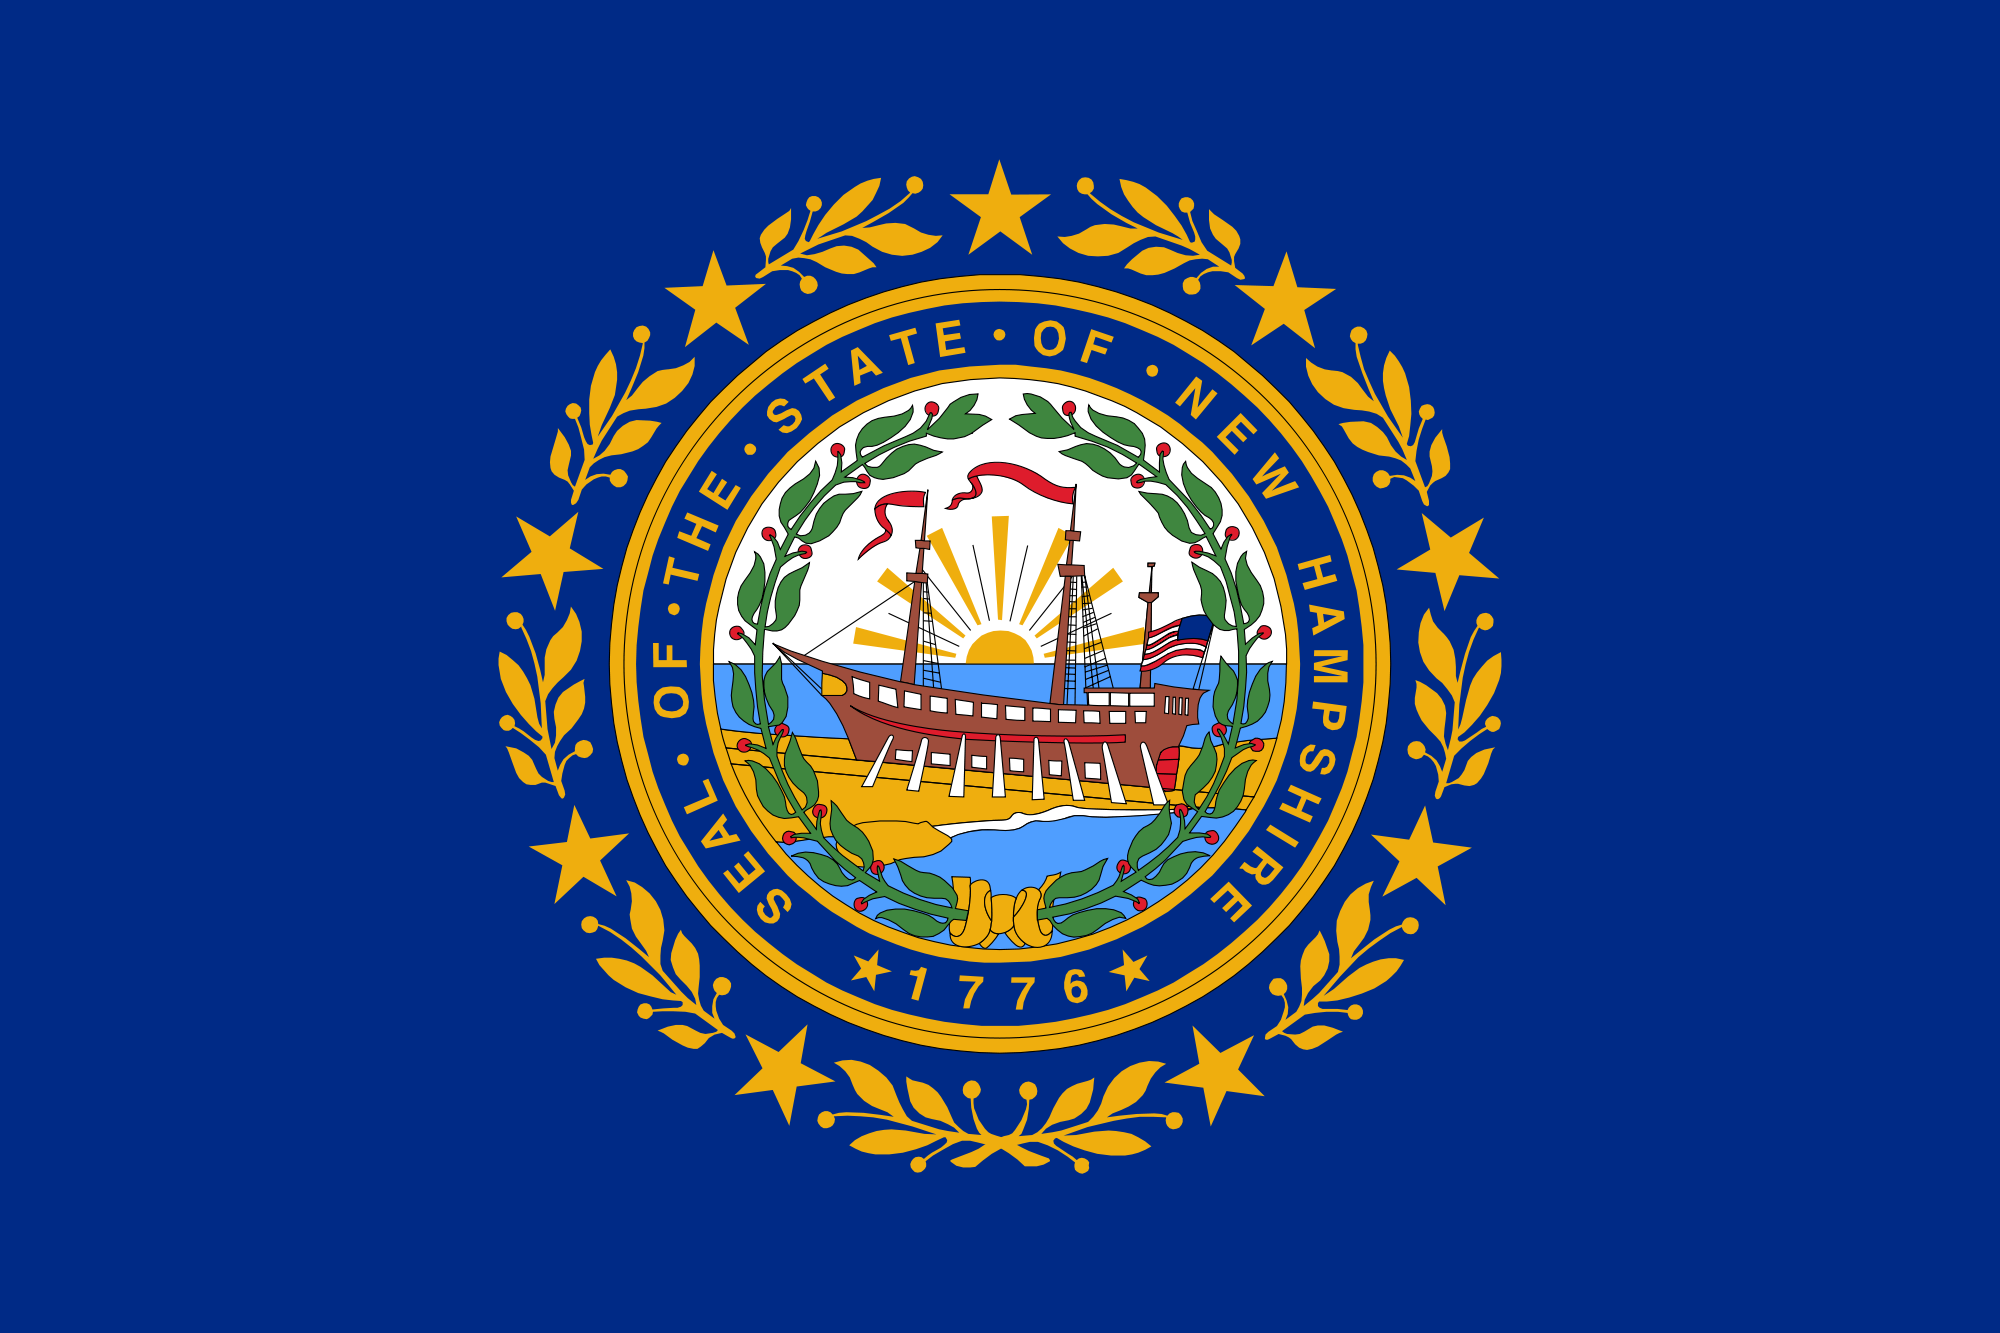 Flag And Seal Of New Hampshire State Flags New Hampshire Hampshire